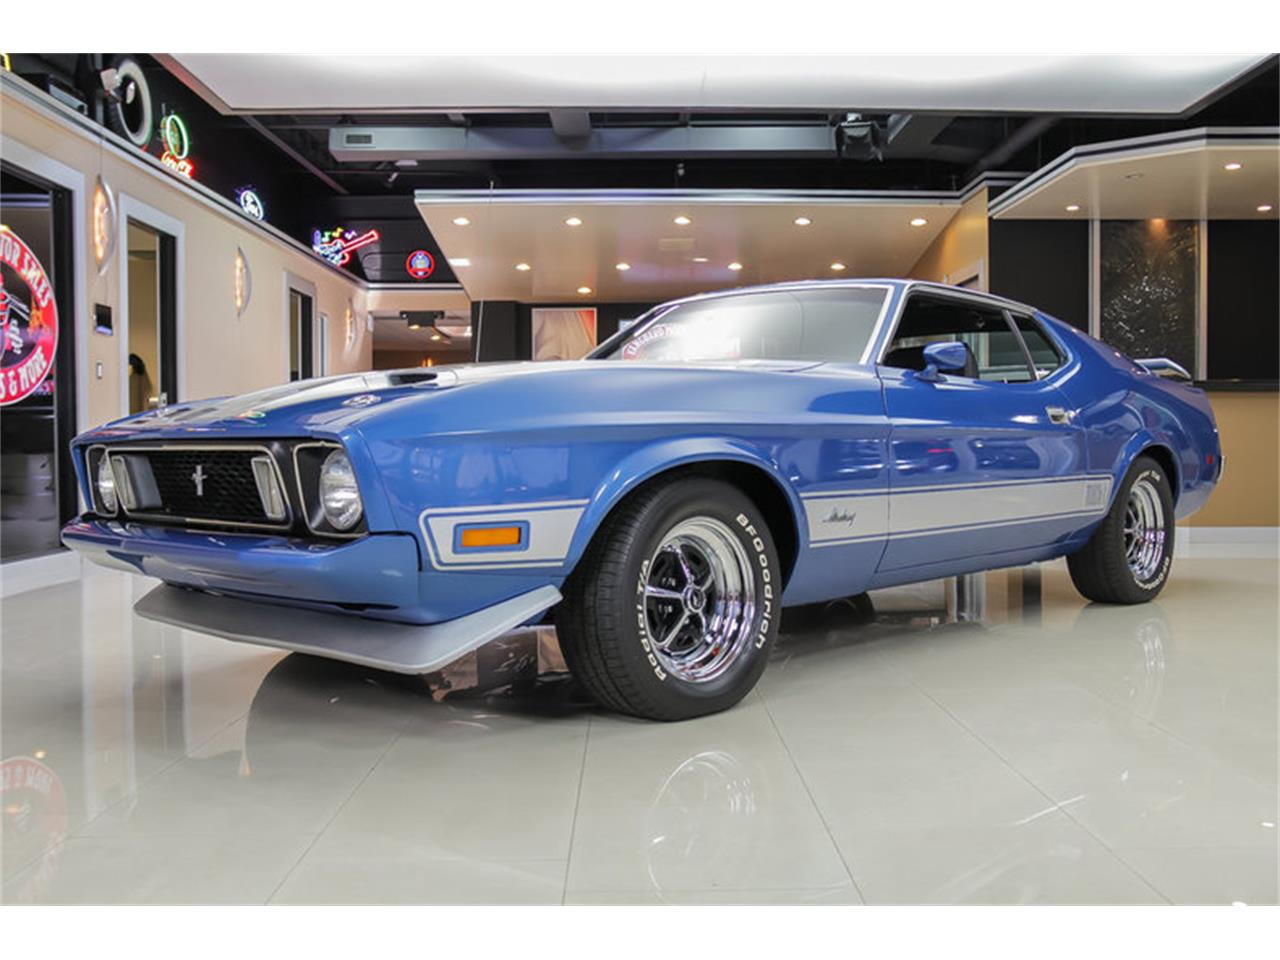 Large Picture of Classic 1973 Mustang Mach 1 Q Code Offered by Vanguard Motor Sales - JDX1